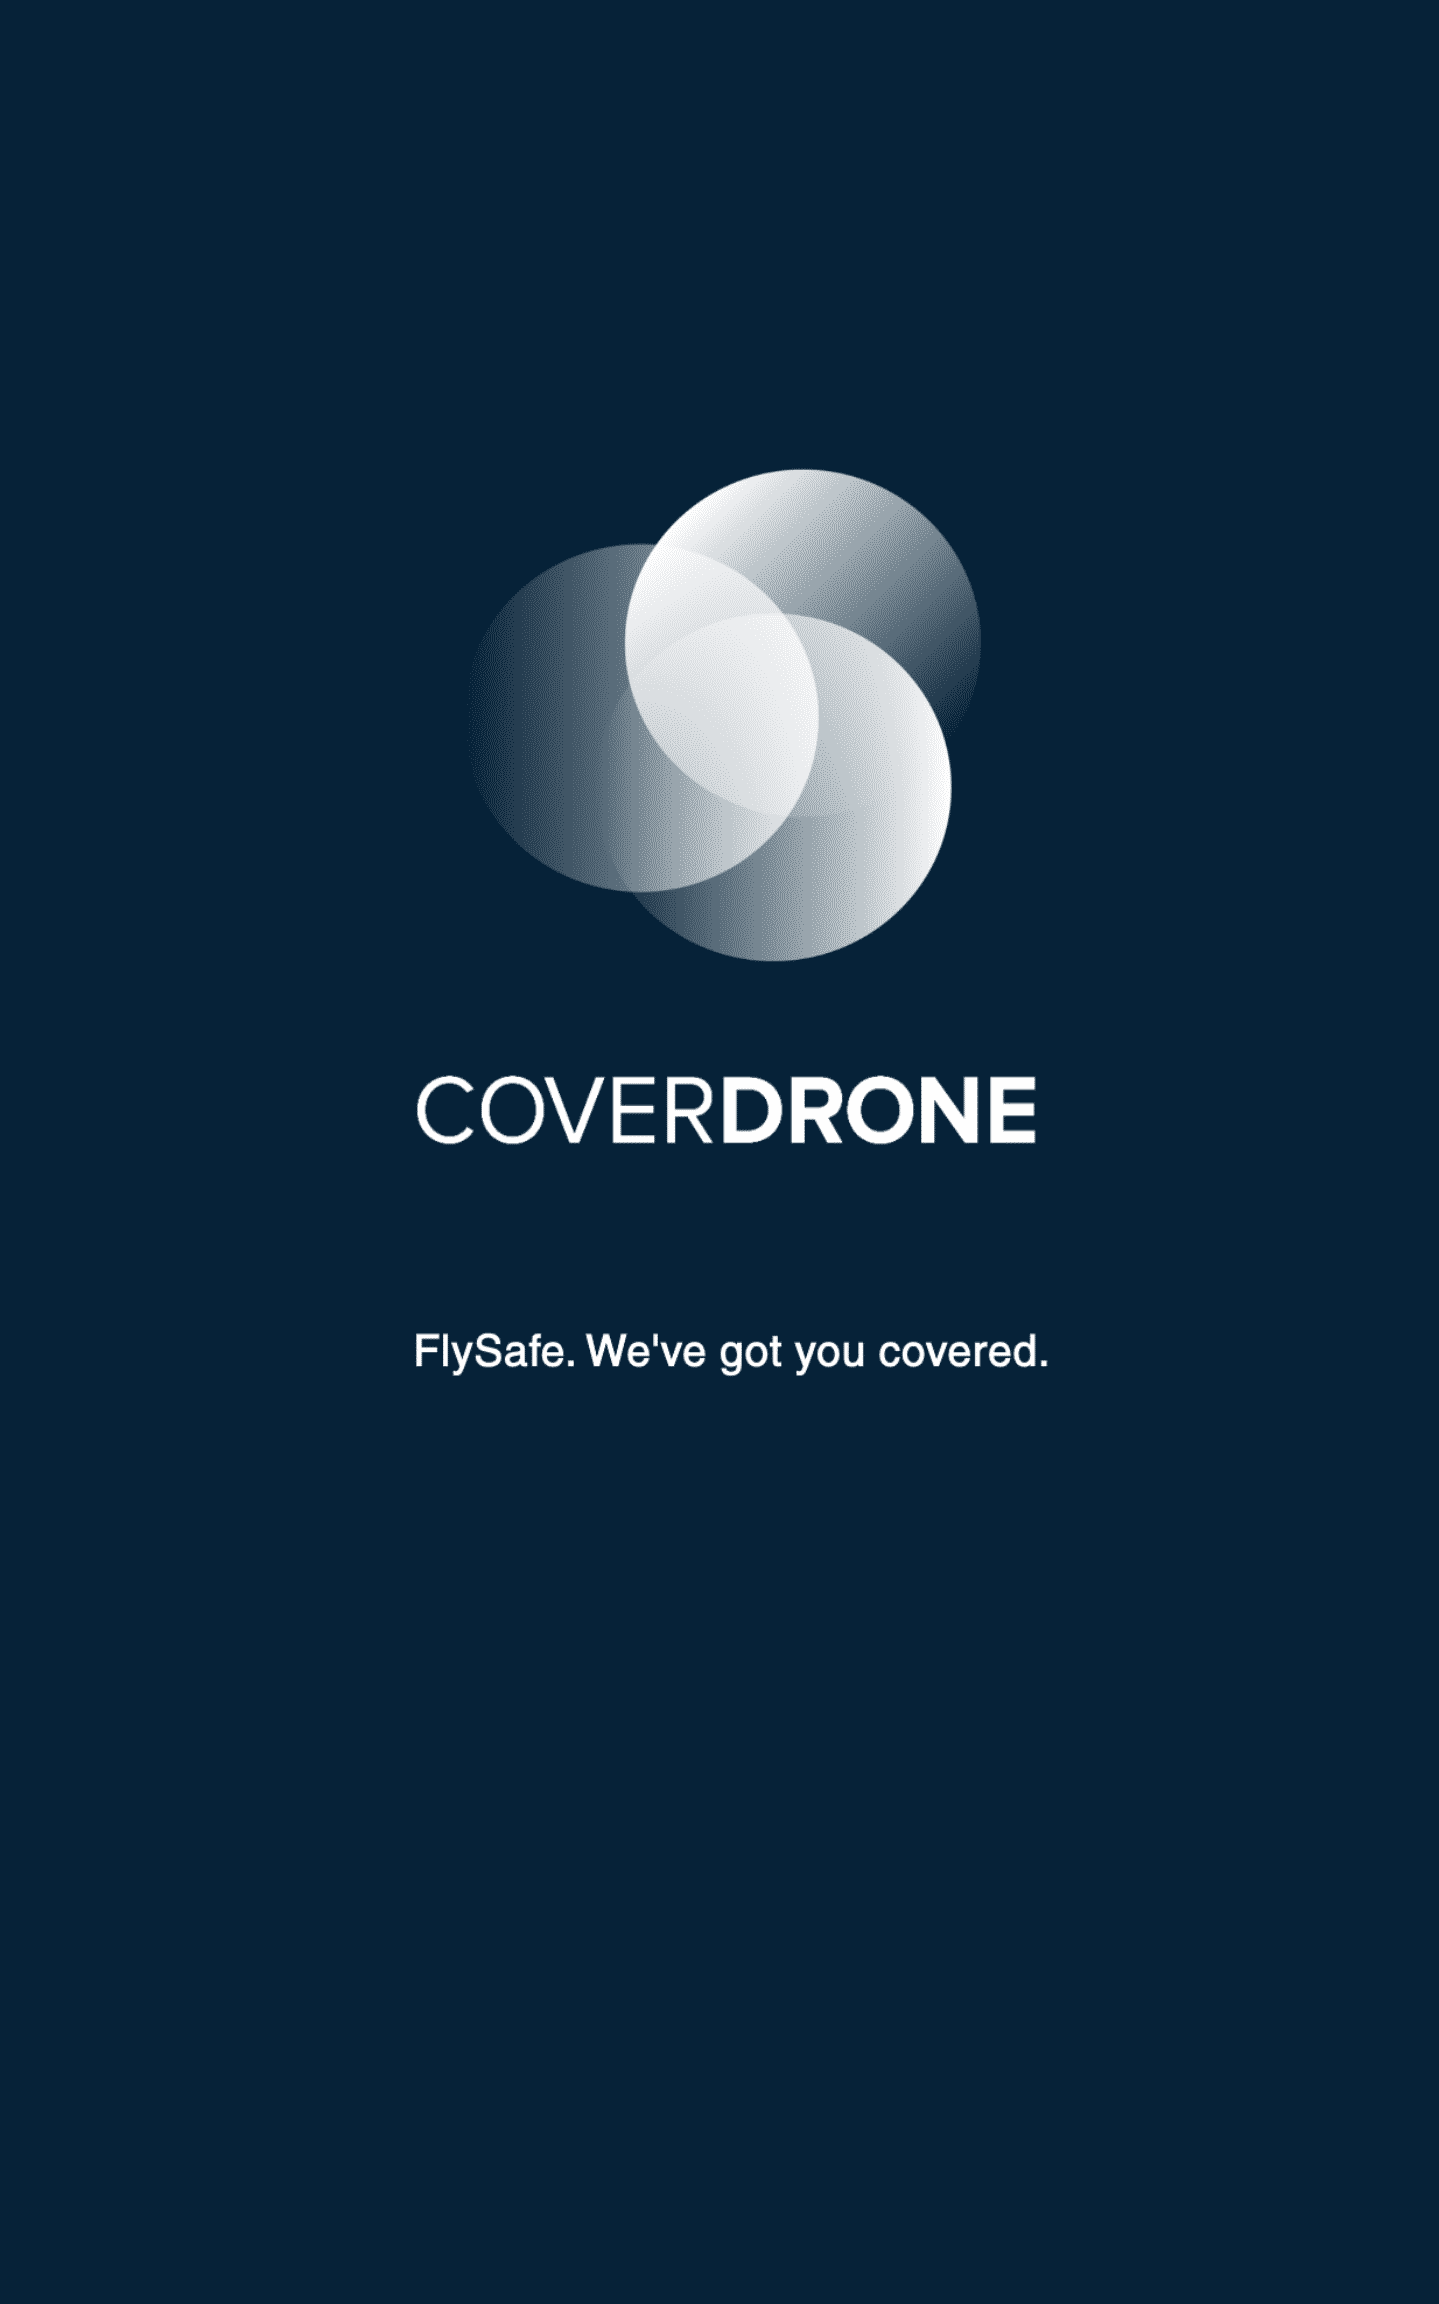 Coverdrone Logo on Blue Background